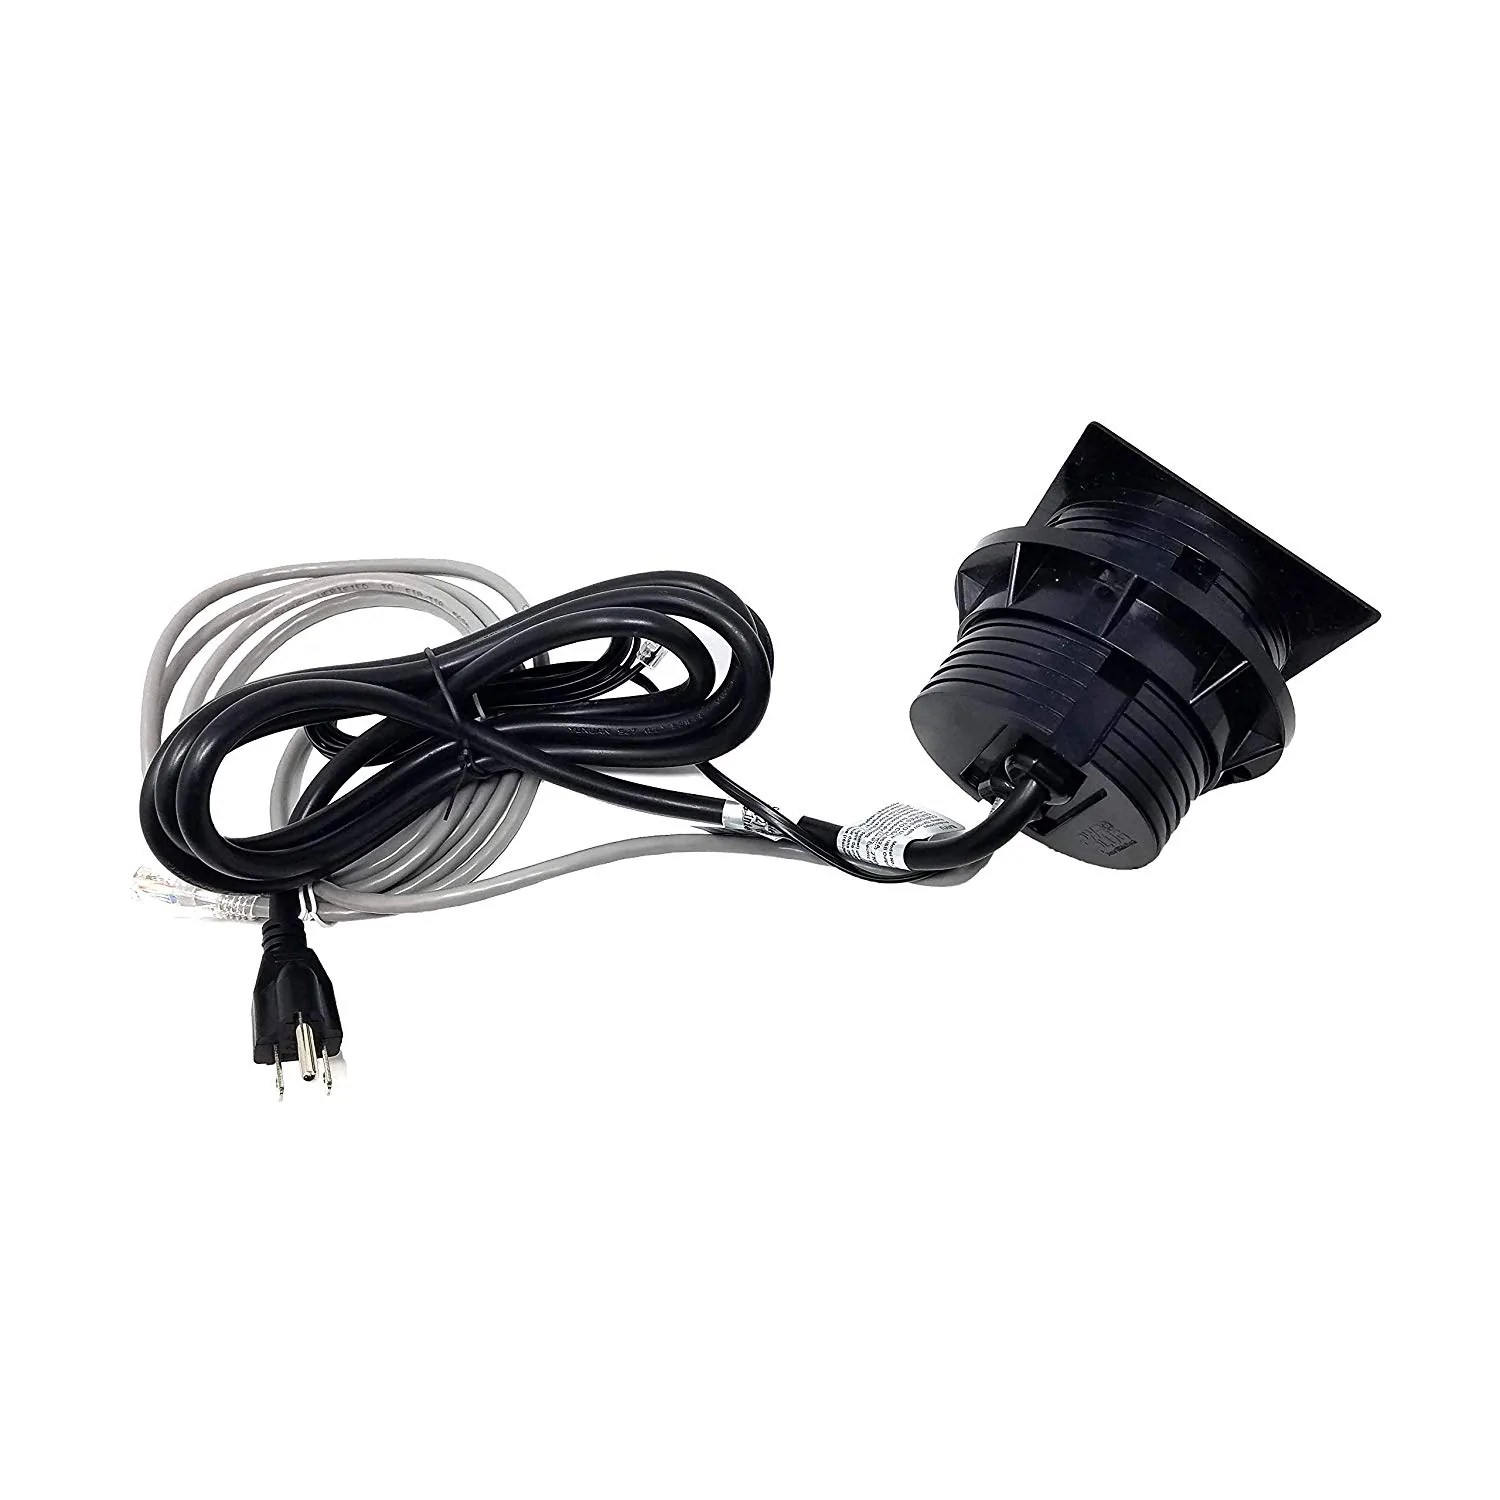 pwr plug power grommet with phone jack universal fit 3 1 8 3 [ 1500 x 1500 Pixel ]